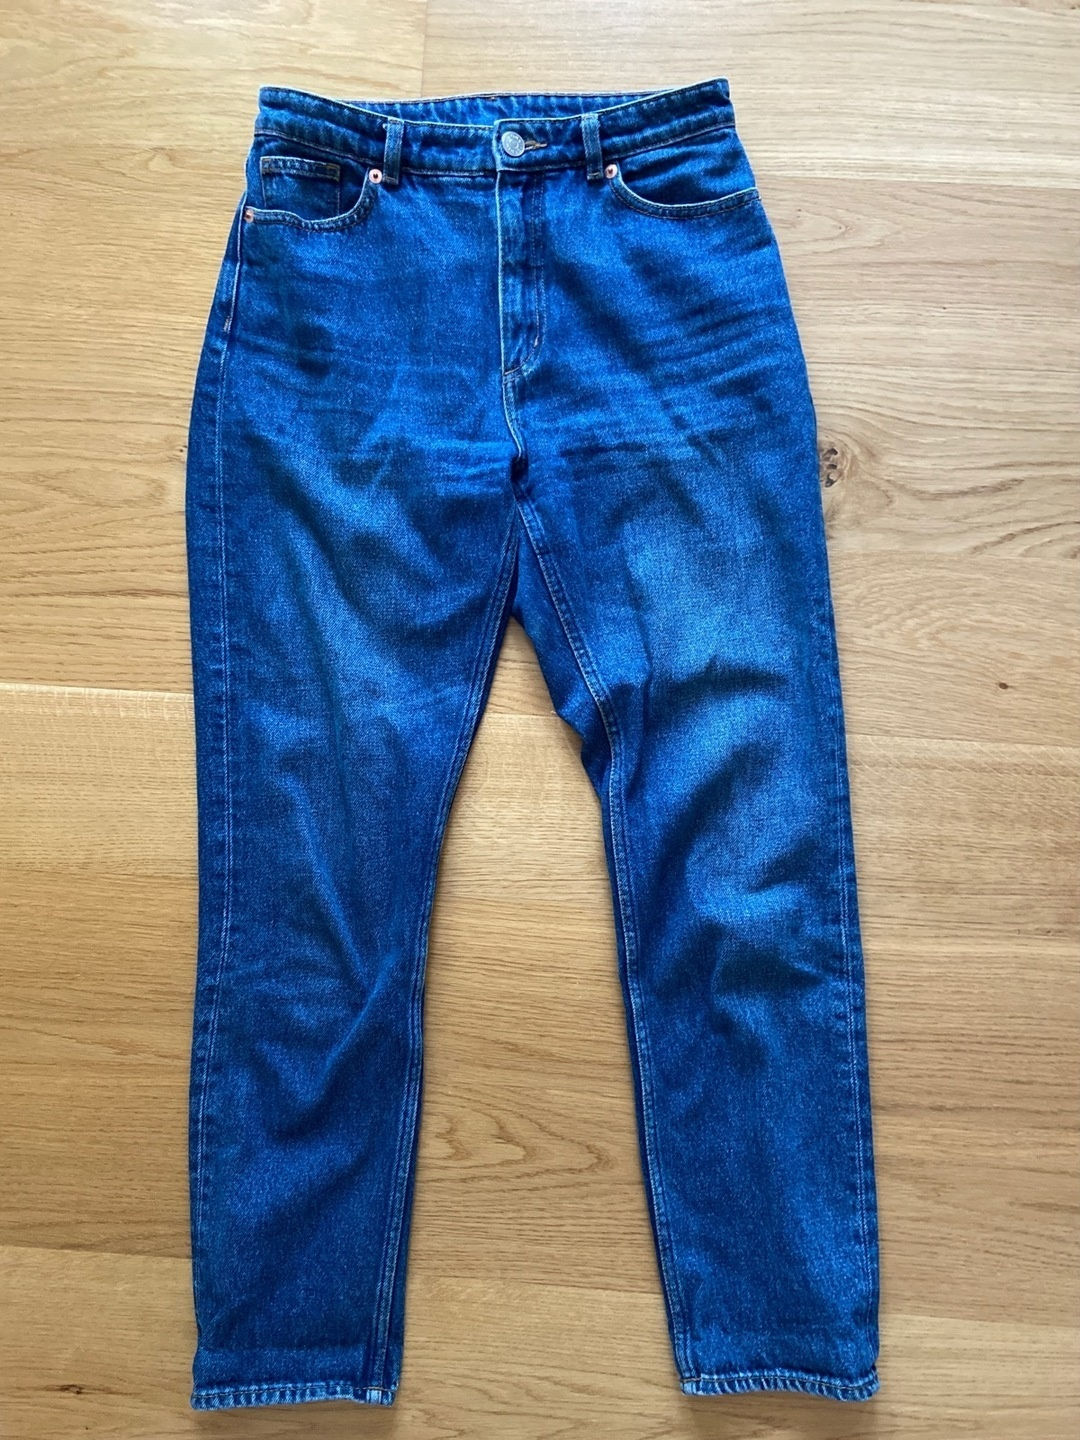 Damers bukser og jeans - MONKI photo 1